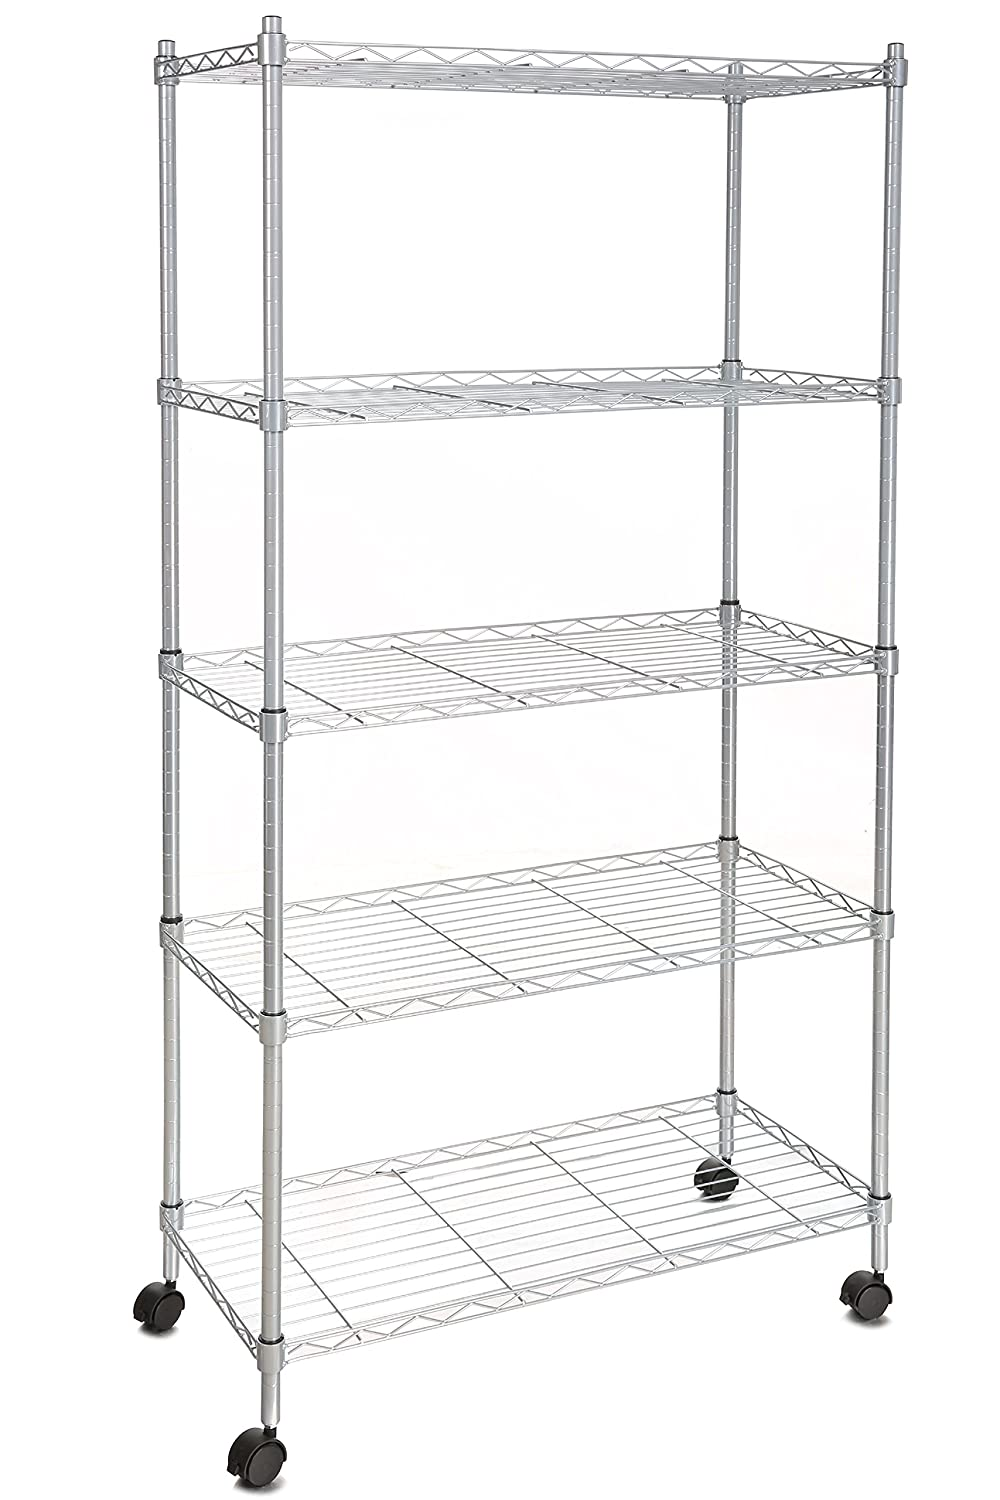 BATHWA Wire Shelving 5-Shelf Metal Shelf Unit with Wheels for Kitchen Bedroom Garage Anywhere You Want, Silver